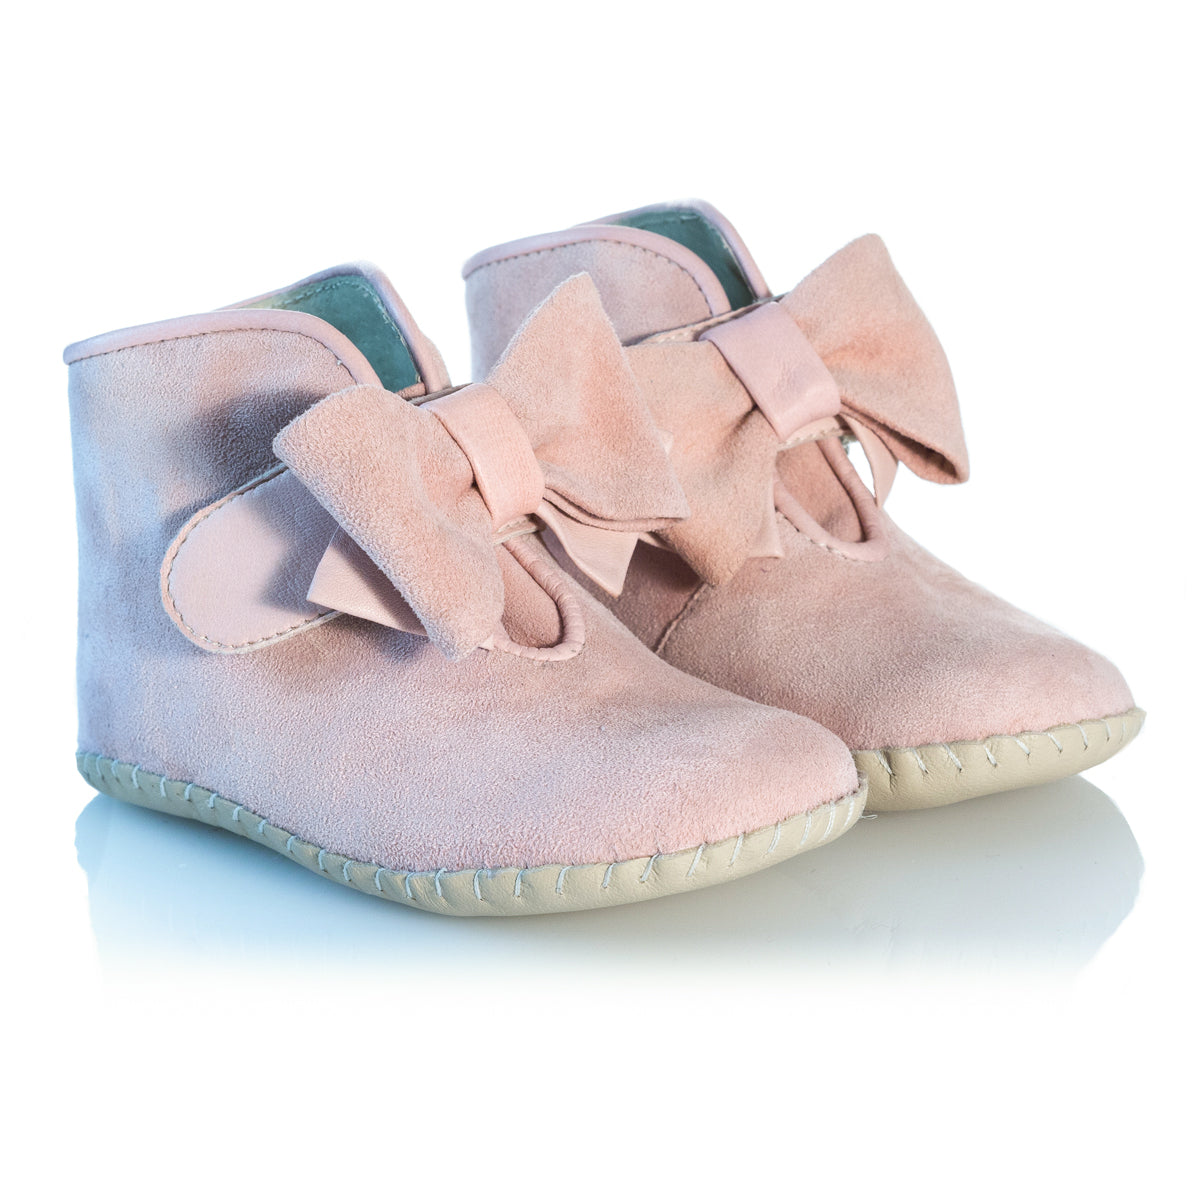 Vibys-Baby-Shoes-Puppy-Paws-Bow-Topped-Pink-pair-view